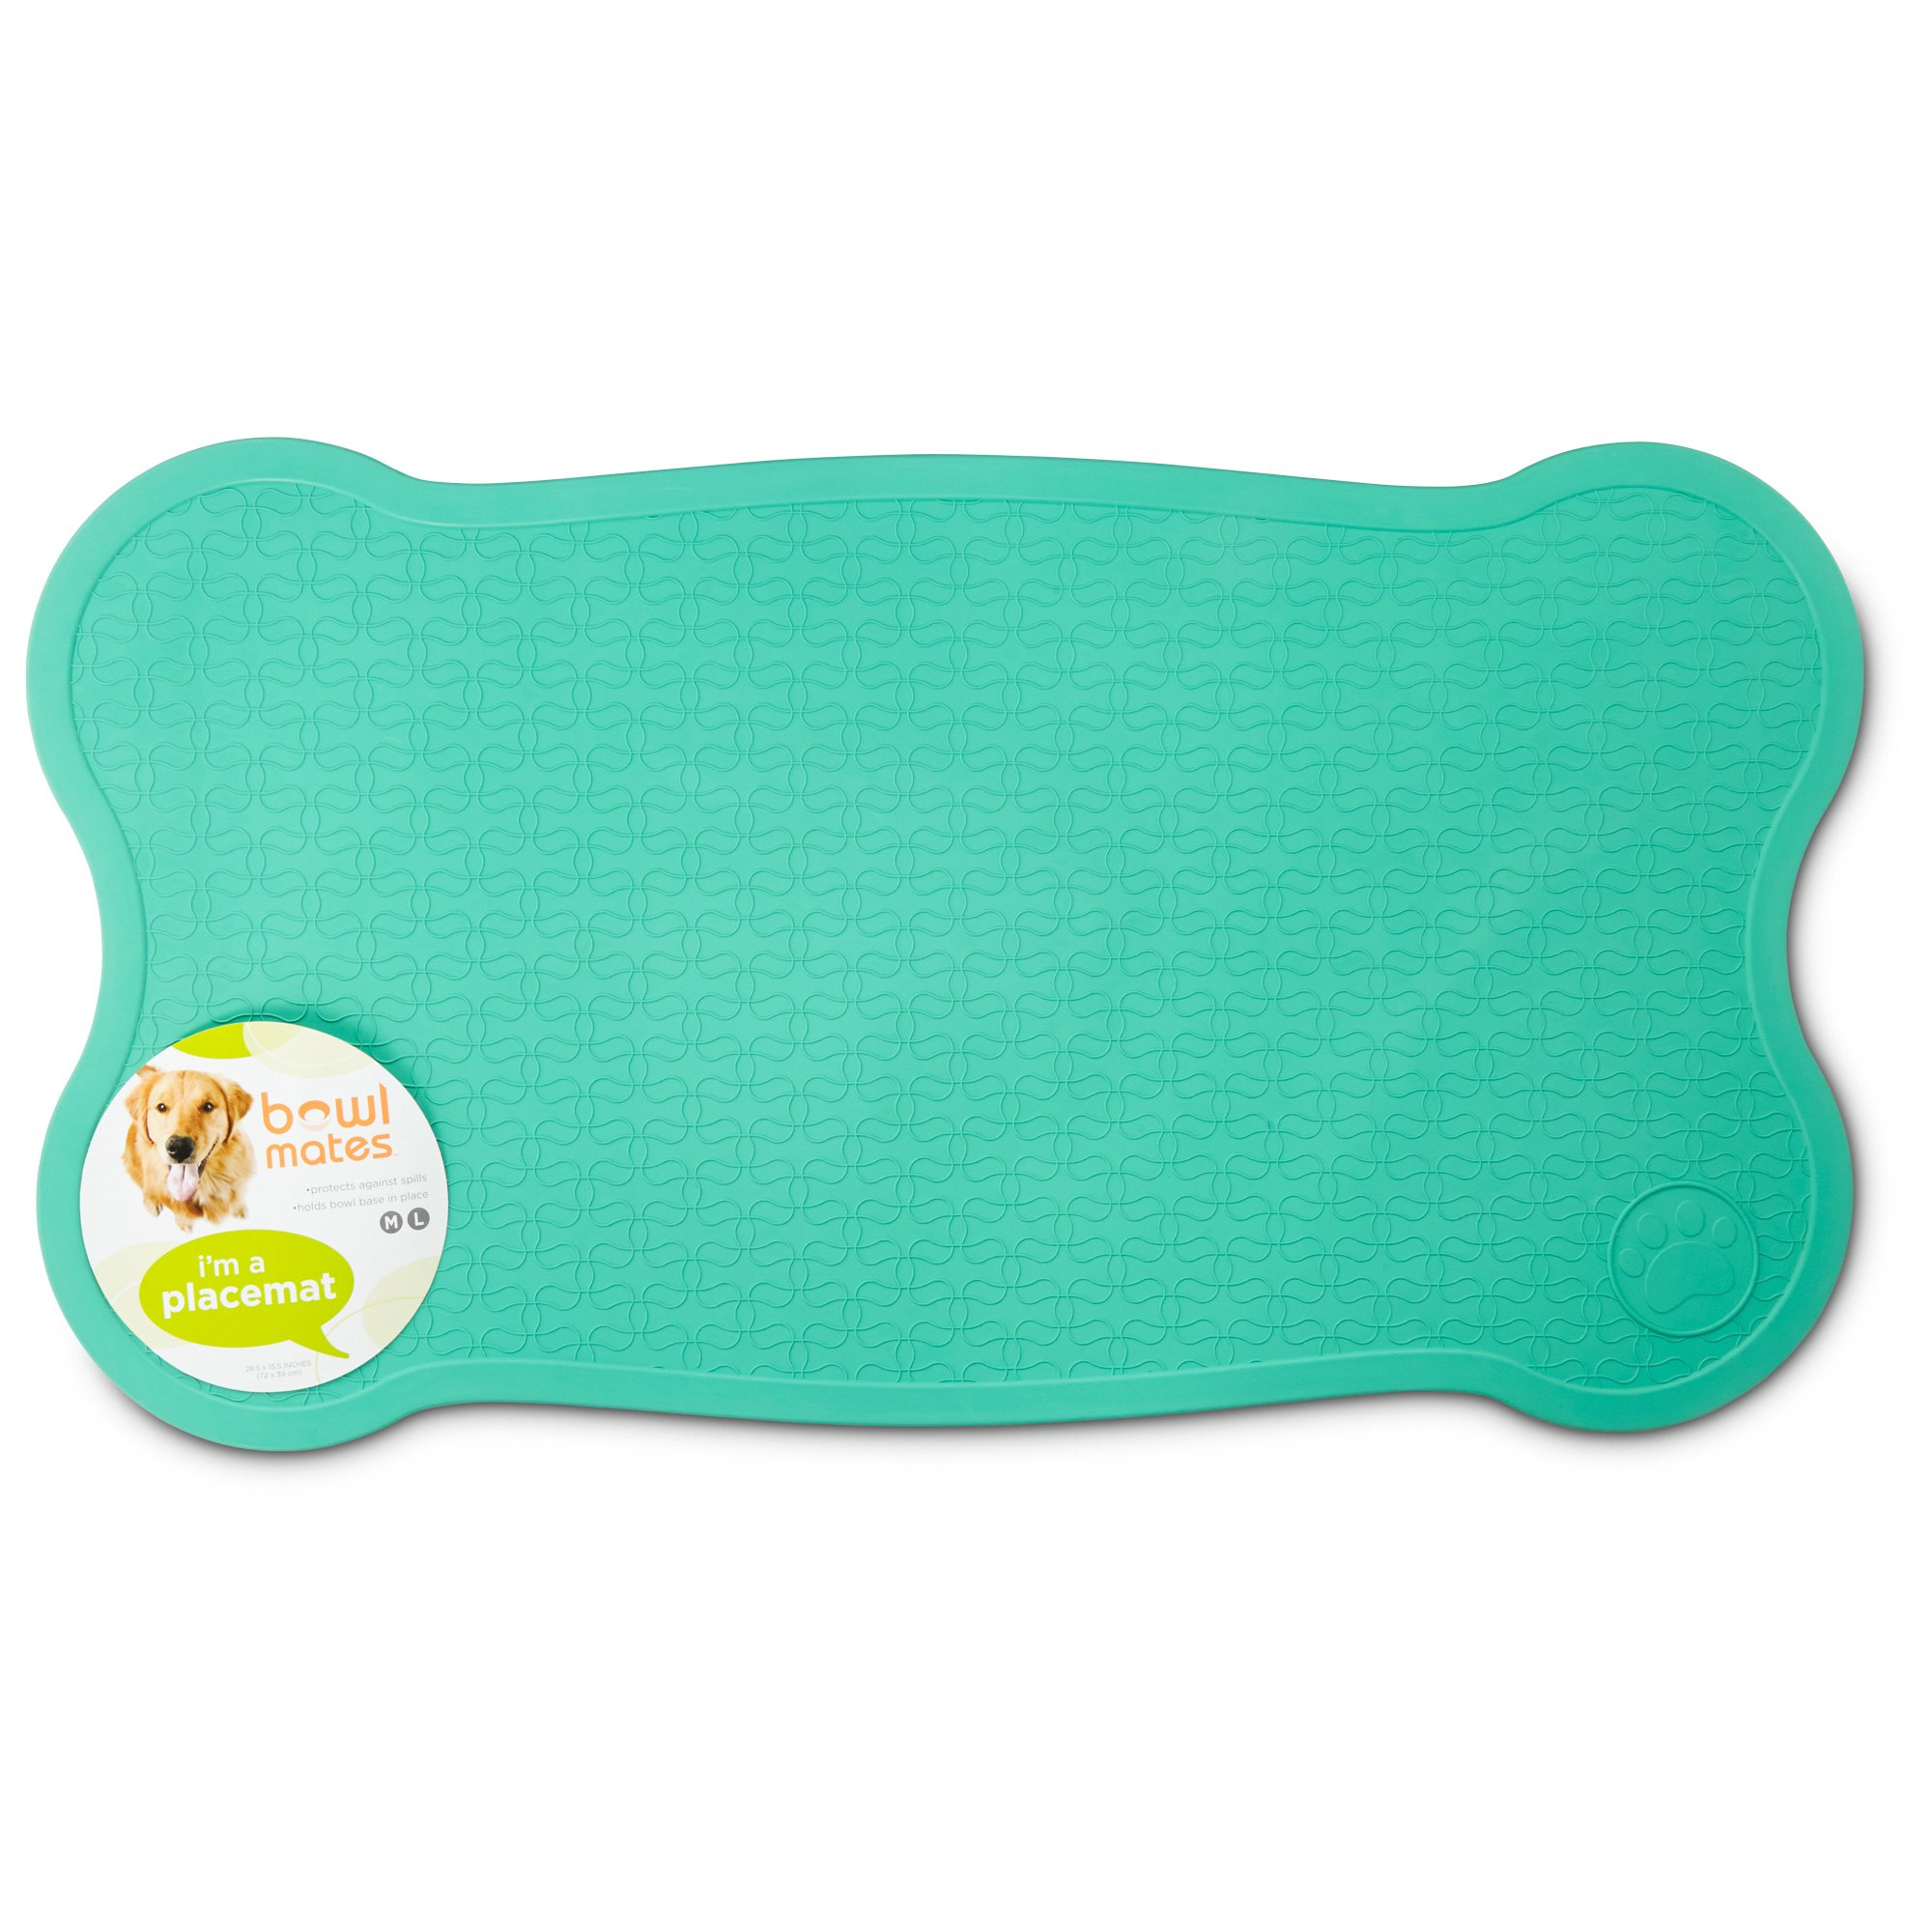 Bowlmates Mint Bone Placemat, Medium/Large